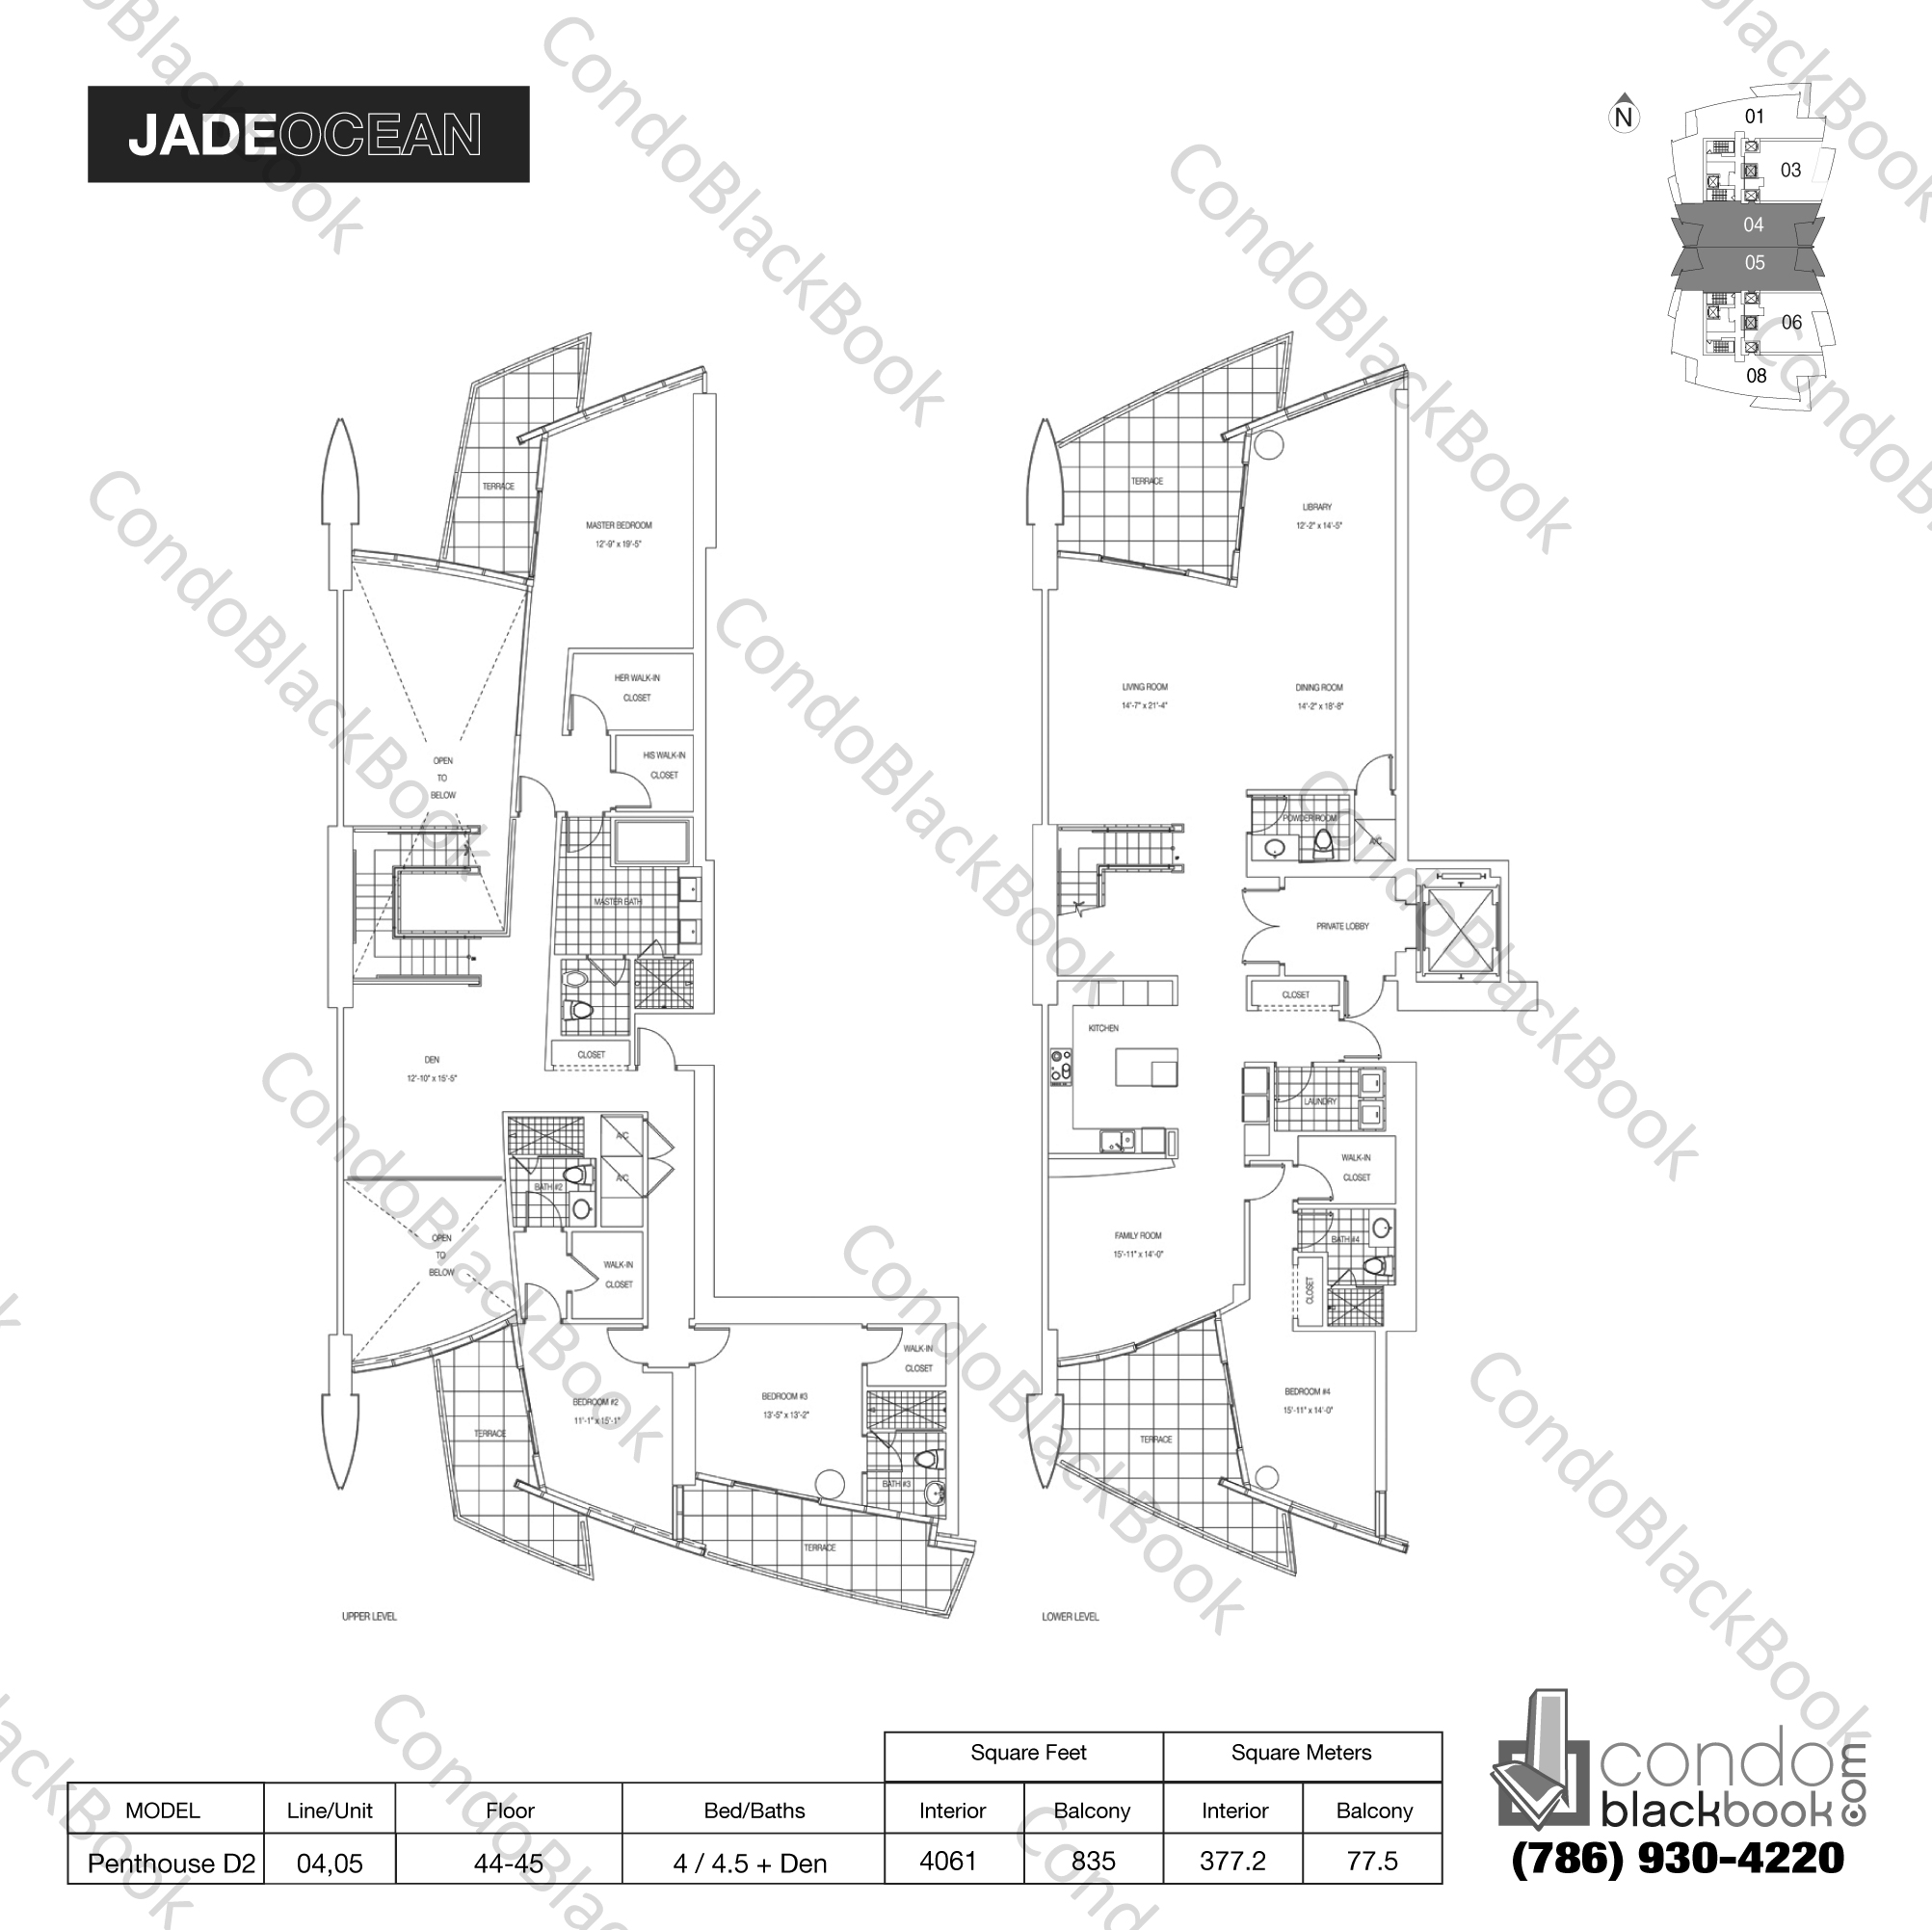 Floor plan for Jade Ocean Sunny Isles Beach, model Penthouse D2, line 04,05, 4 / 4.5 + Den bedrooms, 4061 sq ft